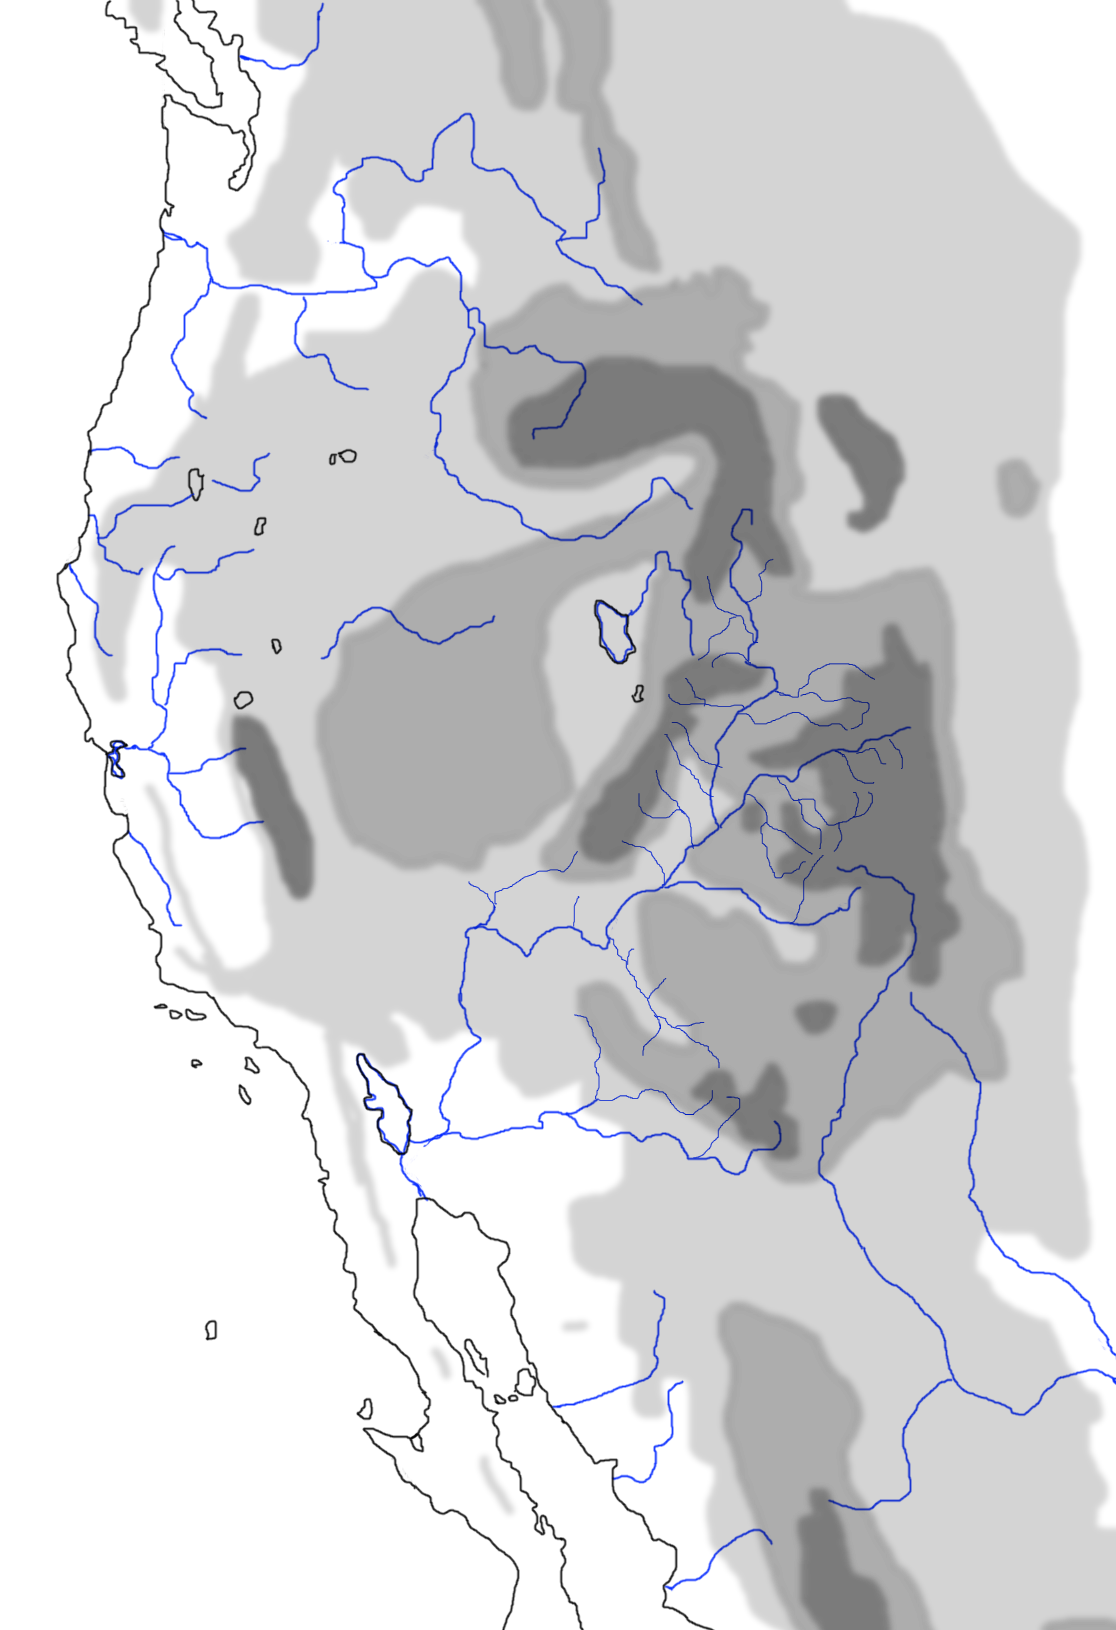 western_temperate_north_america_elevation_and_rivers.png